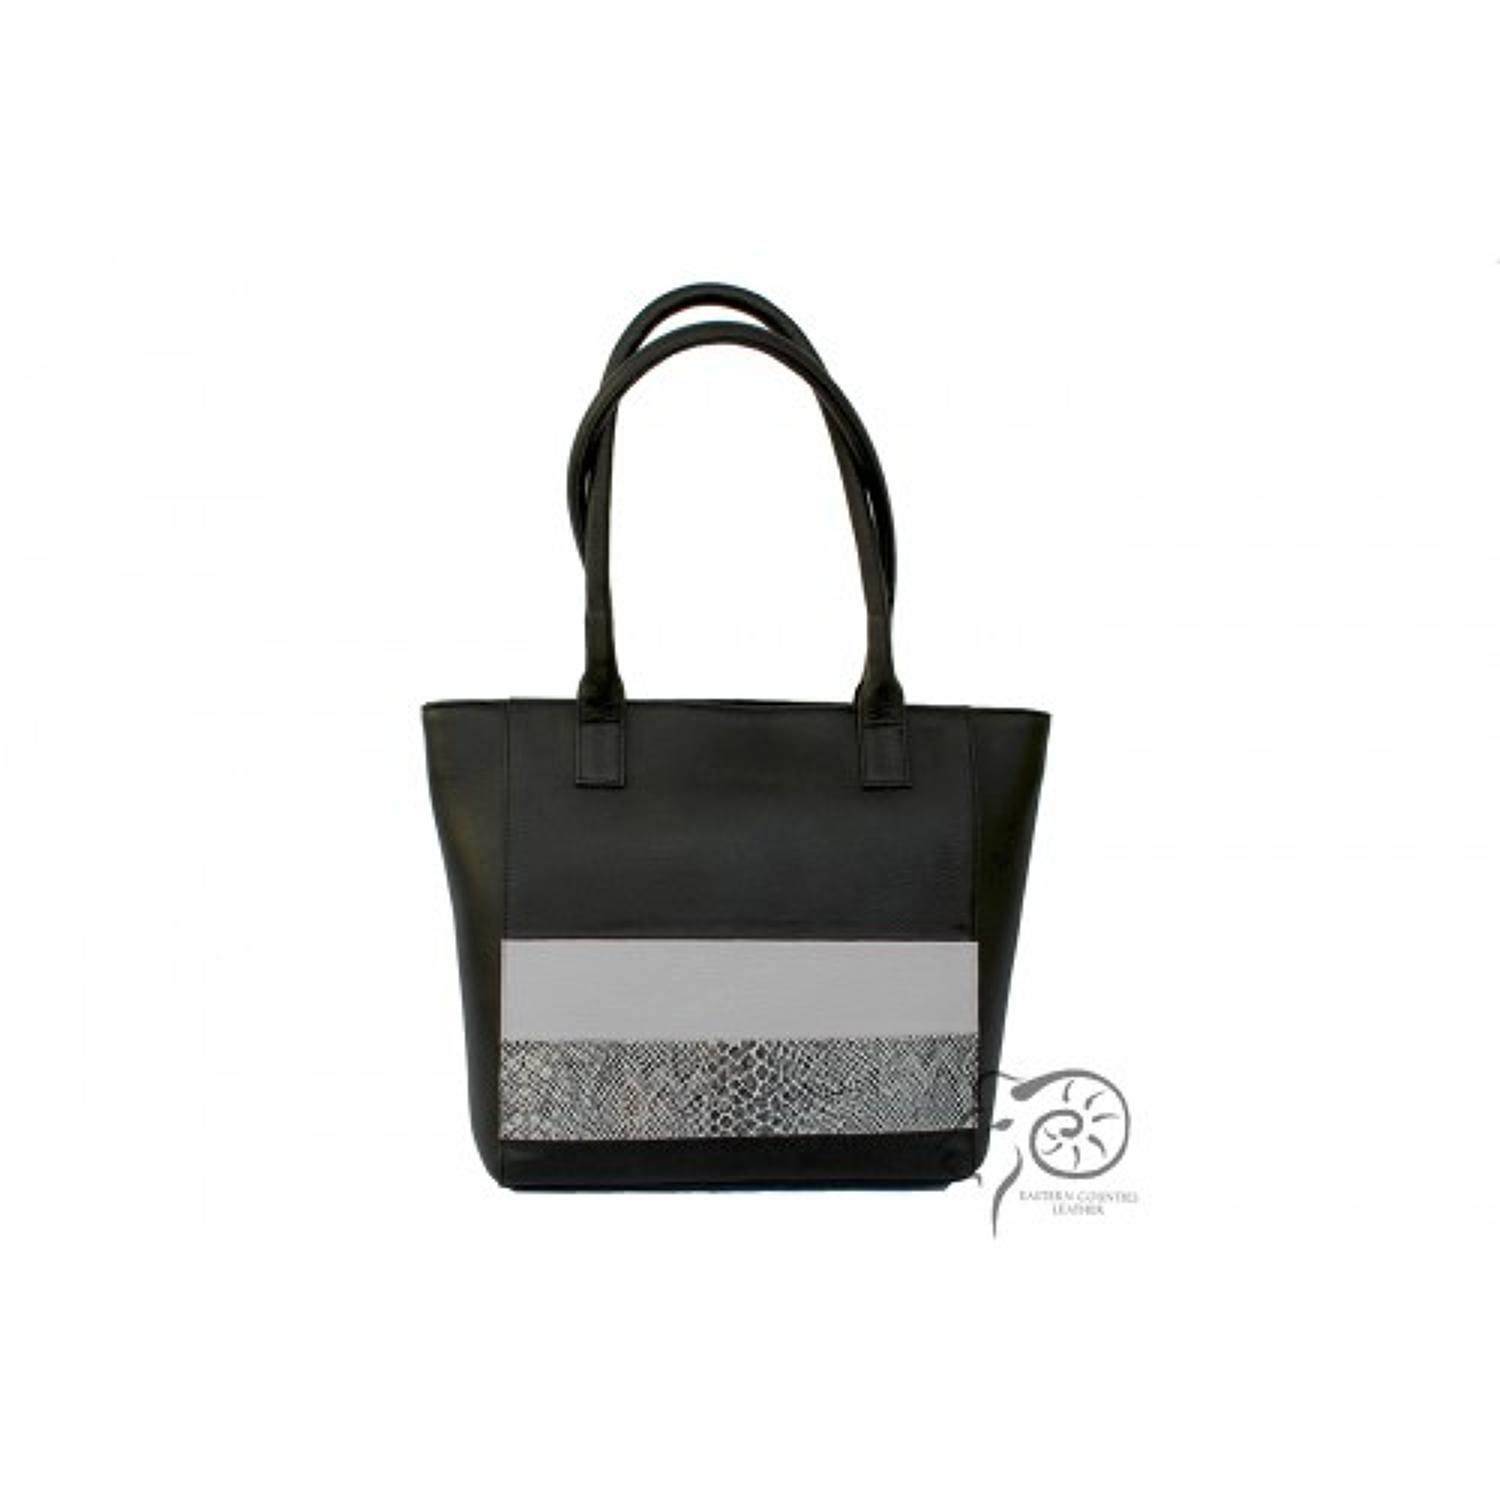 ECL - Leather handbag - Wendy - Black/stone - Twin tote shoulder